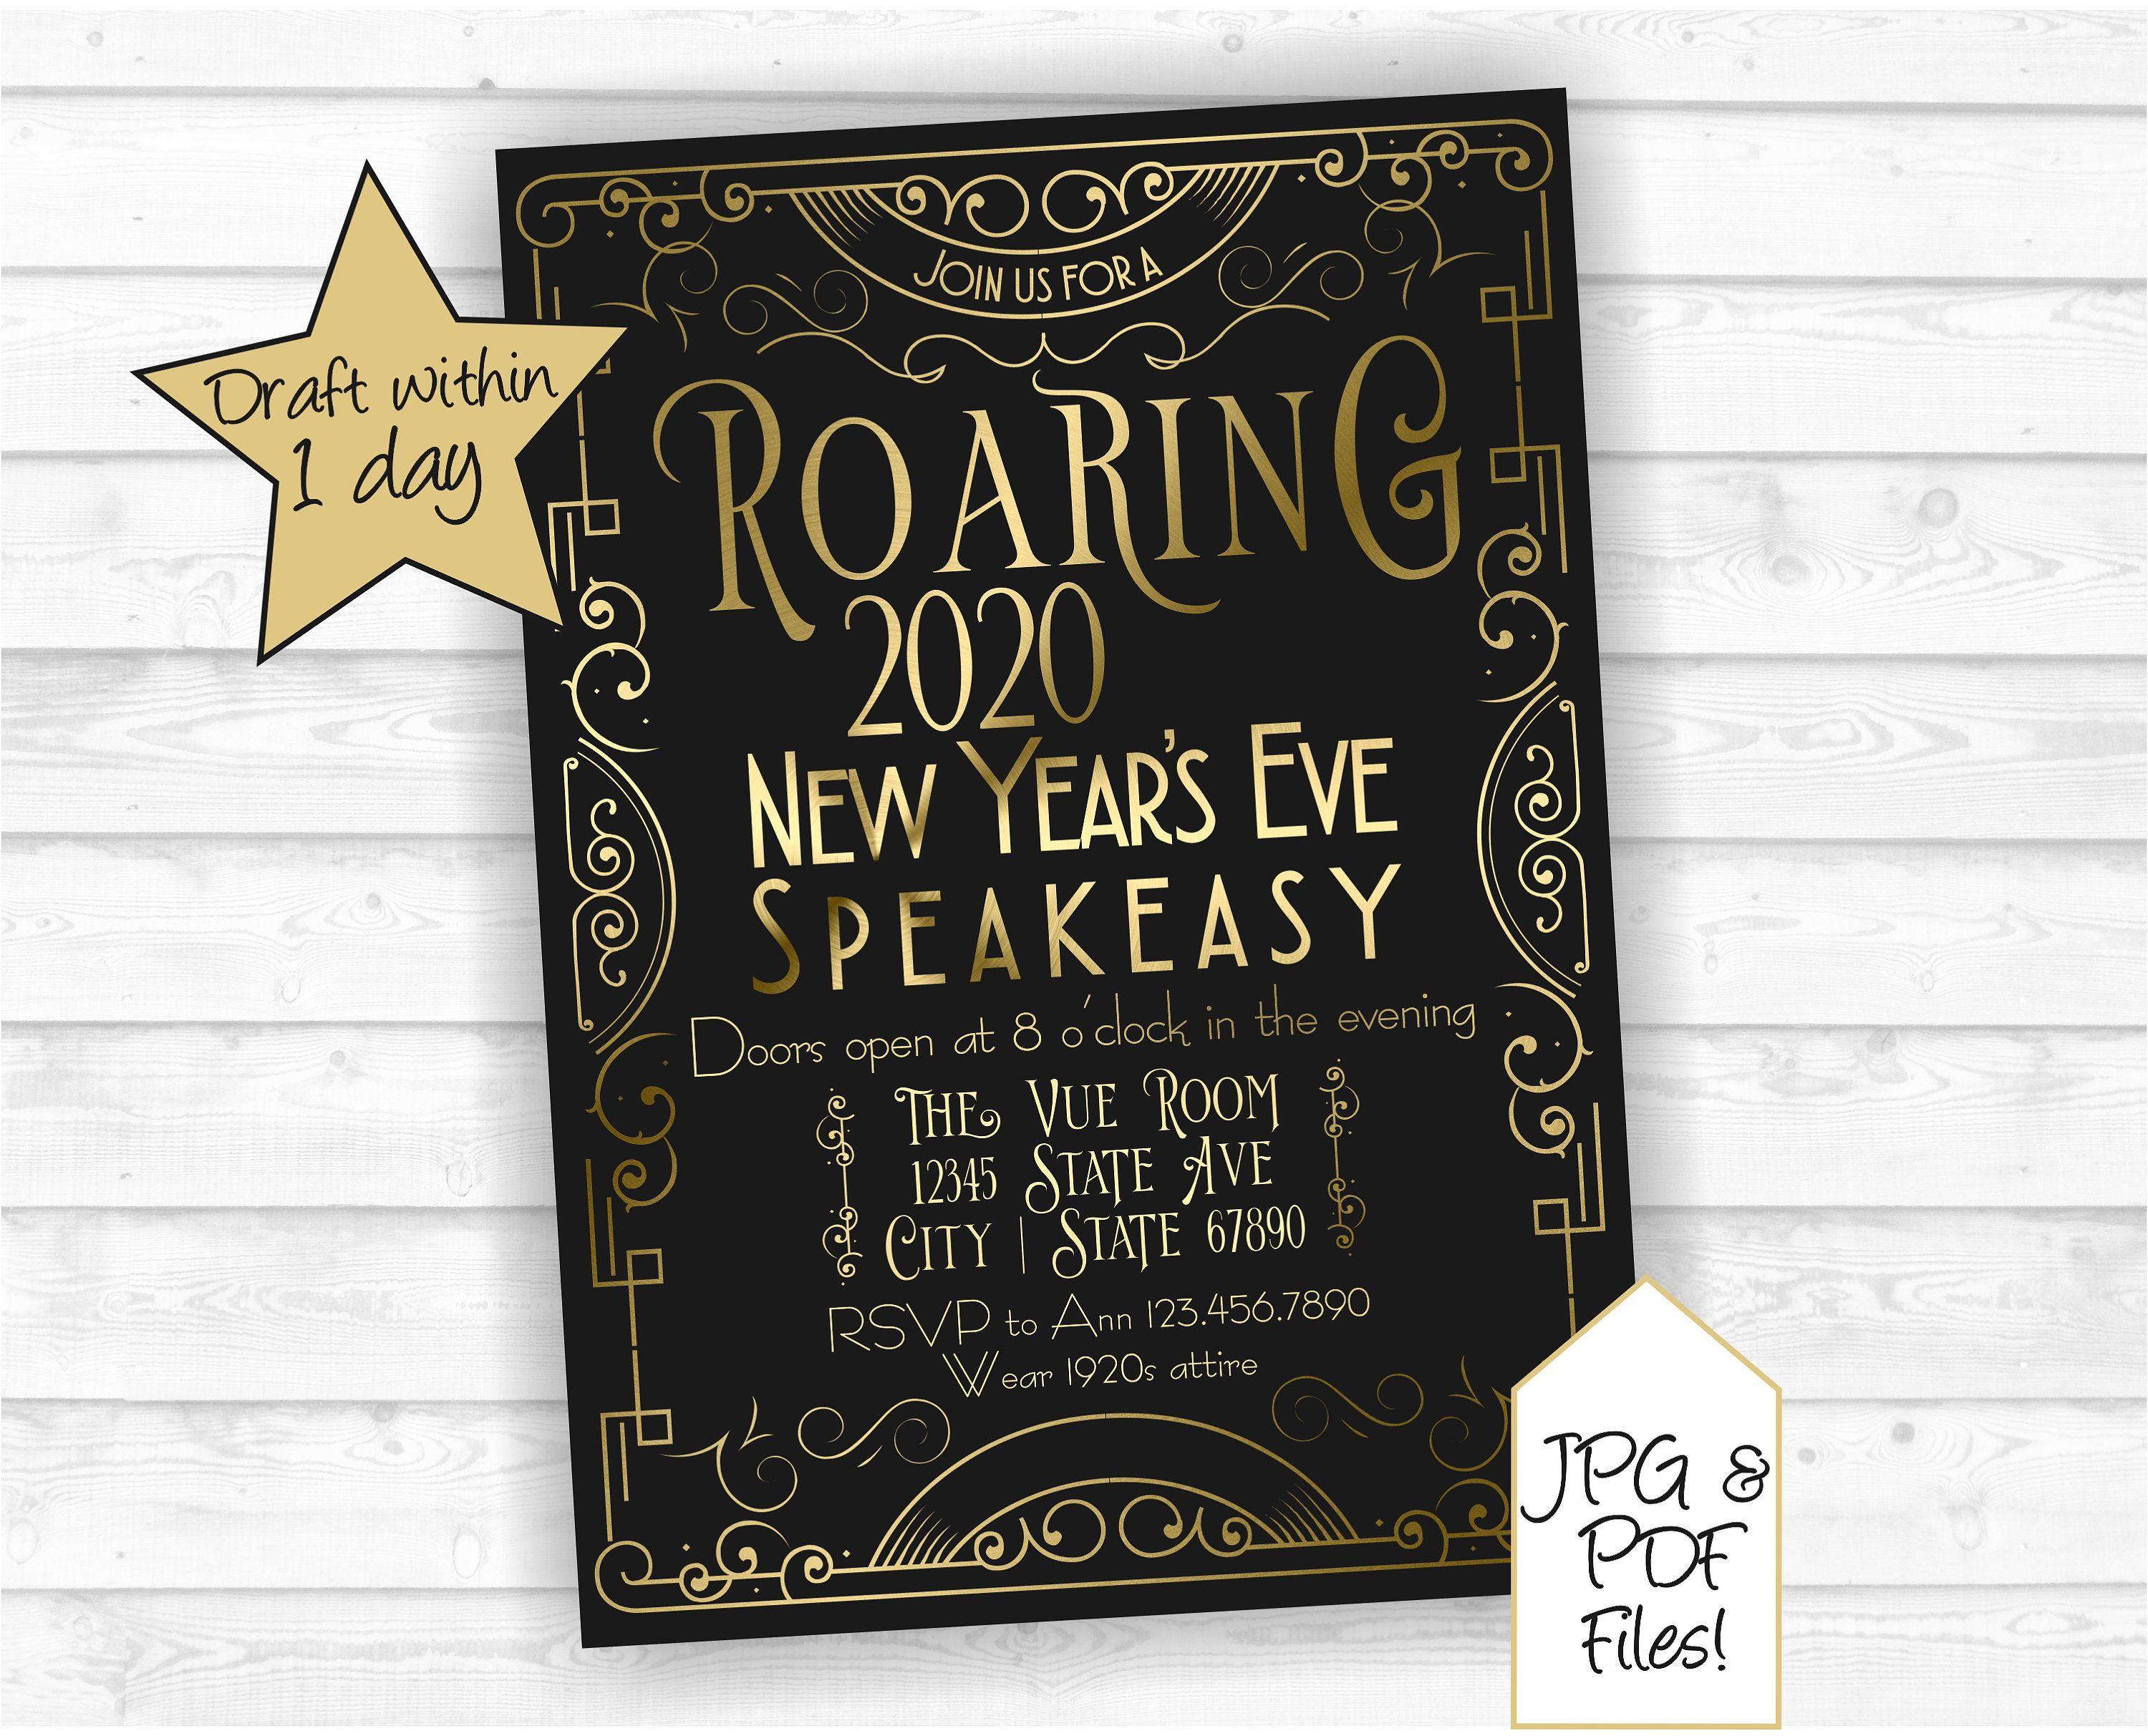 Free Printable Graduation Invitations 2020.Roaring 20s New Year S Eve Party Invitations Speakeasy